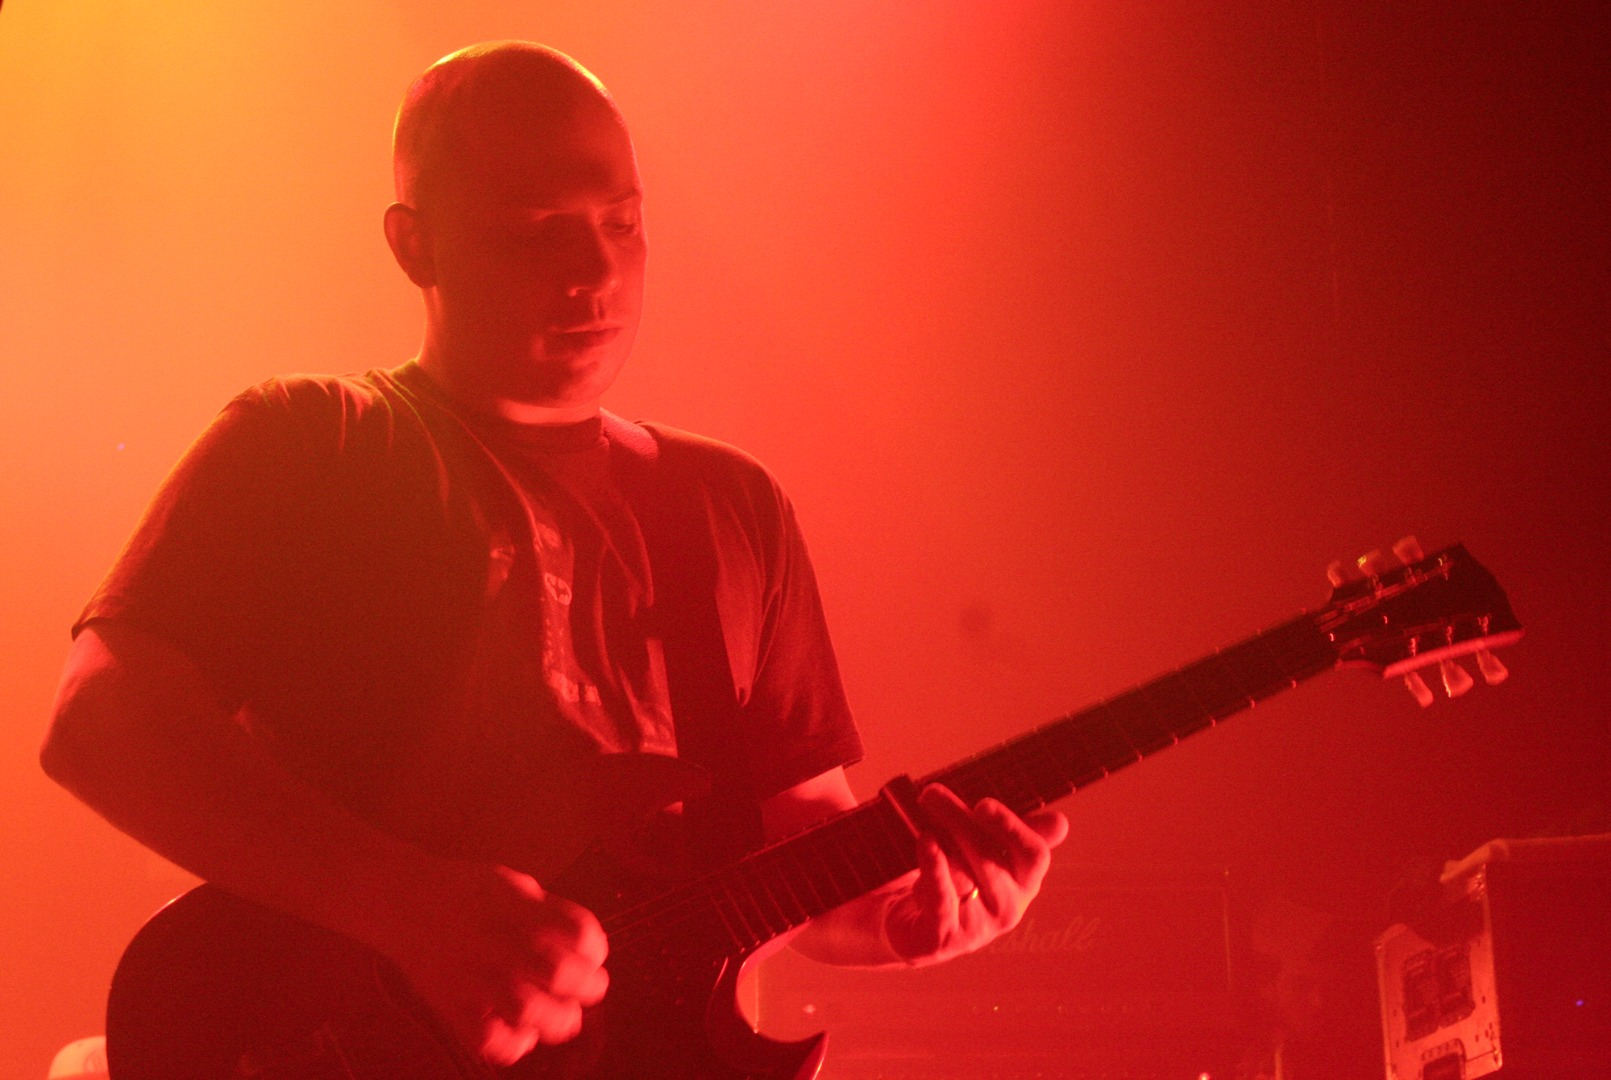 Stuart Braithwaite of Mogwai in Lost in France